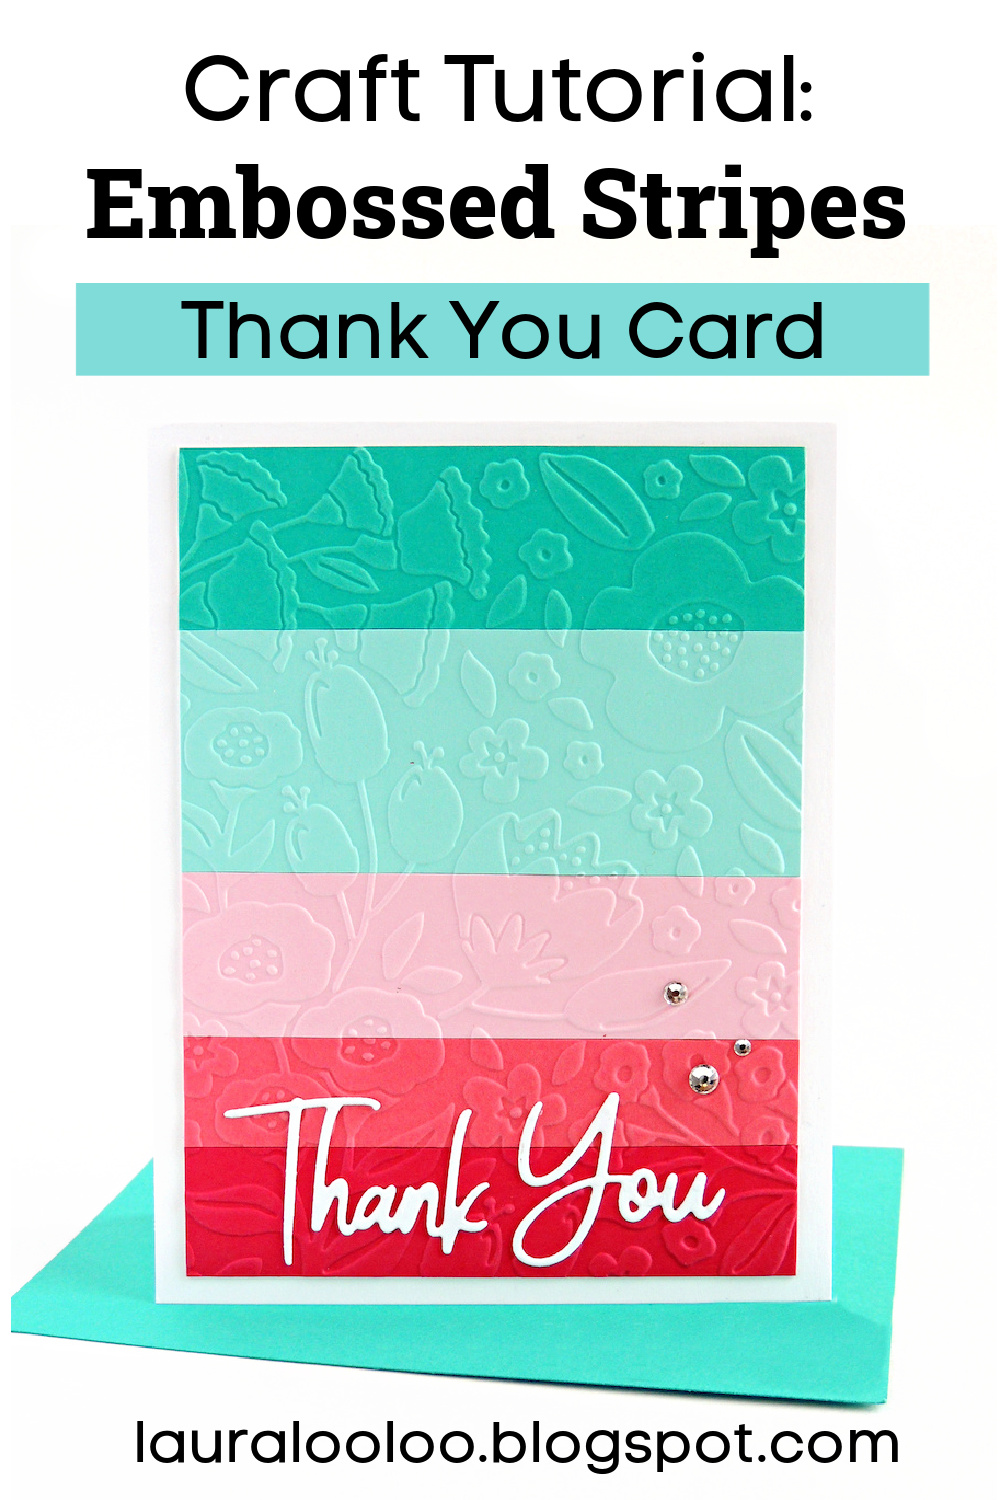 How to make embossed stripes on a thank you card.